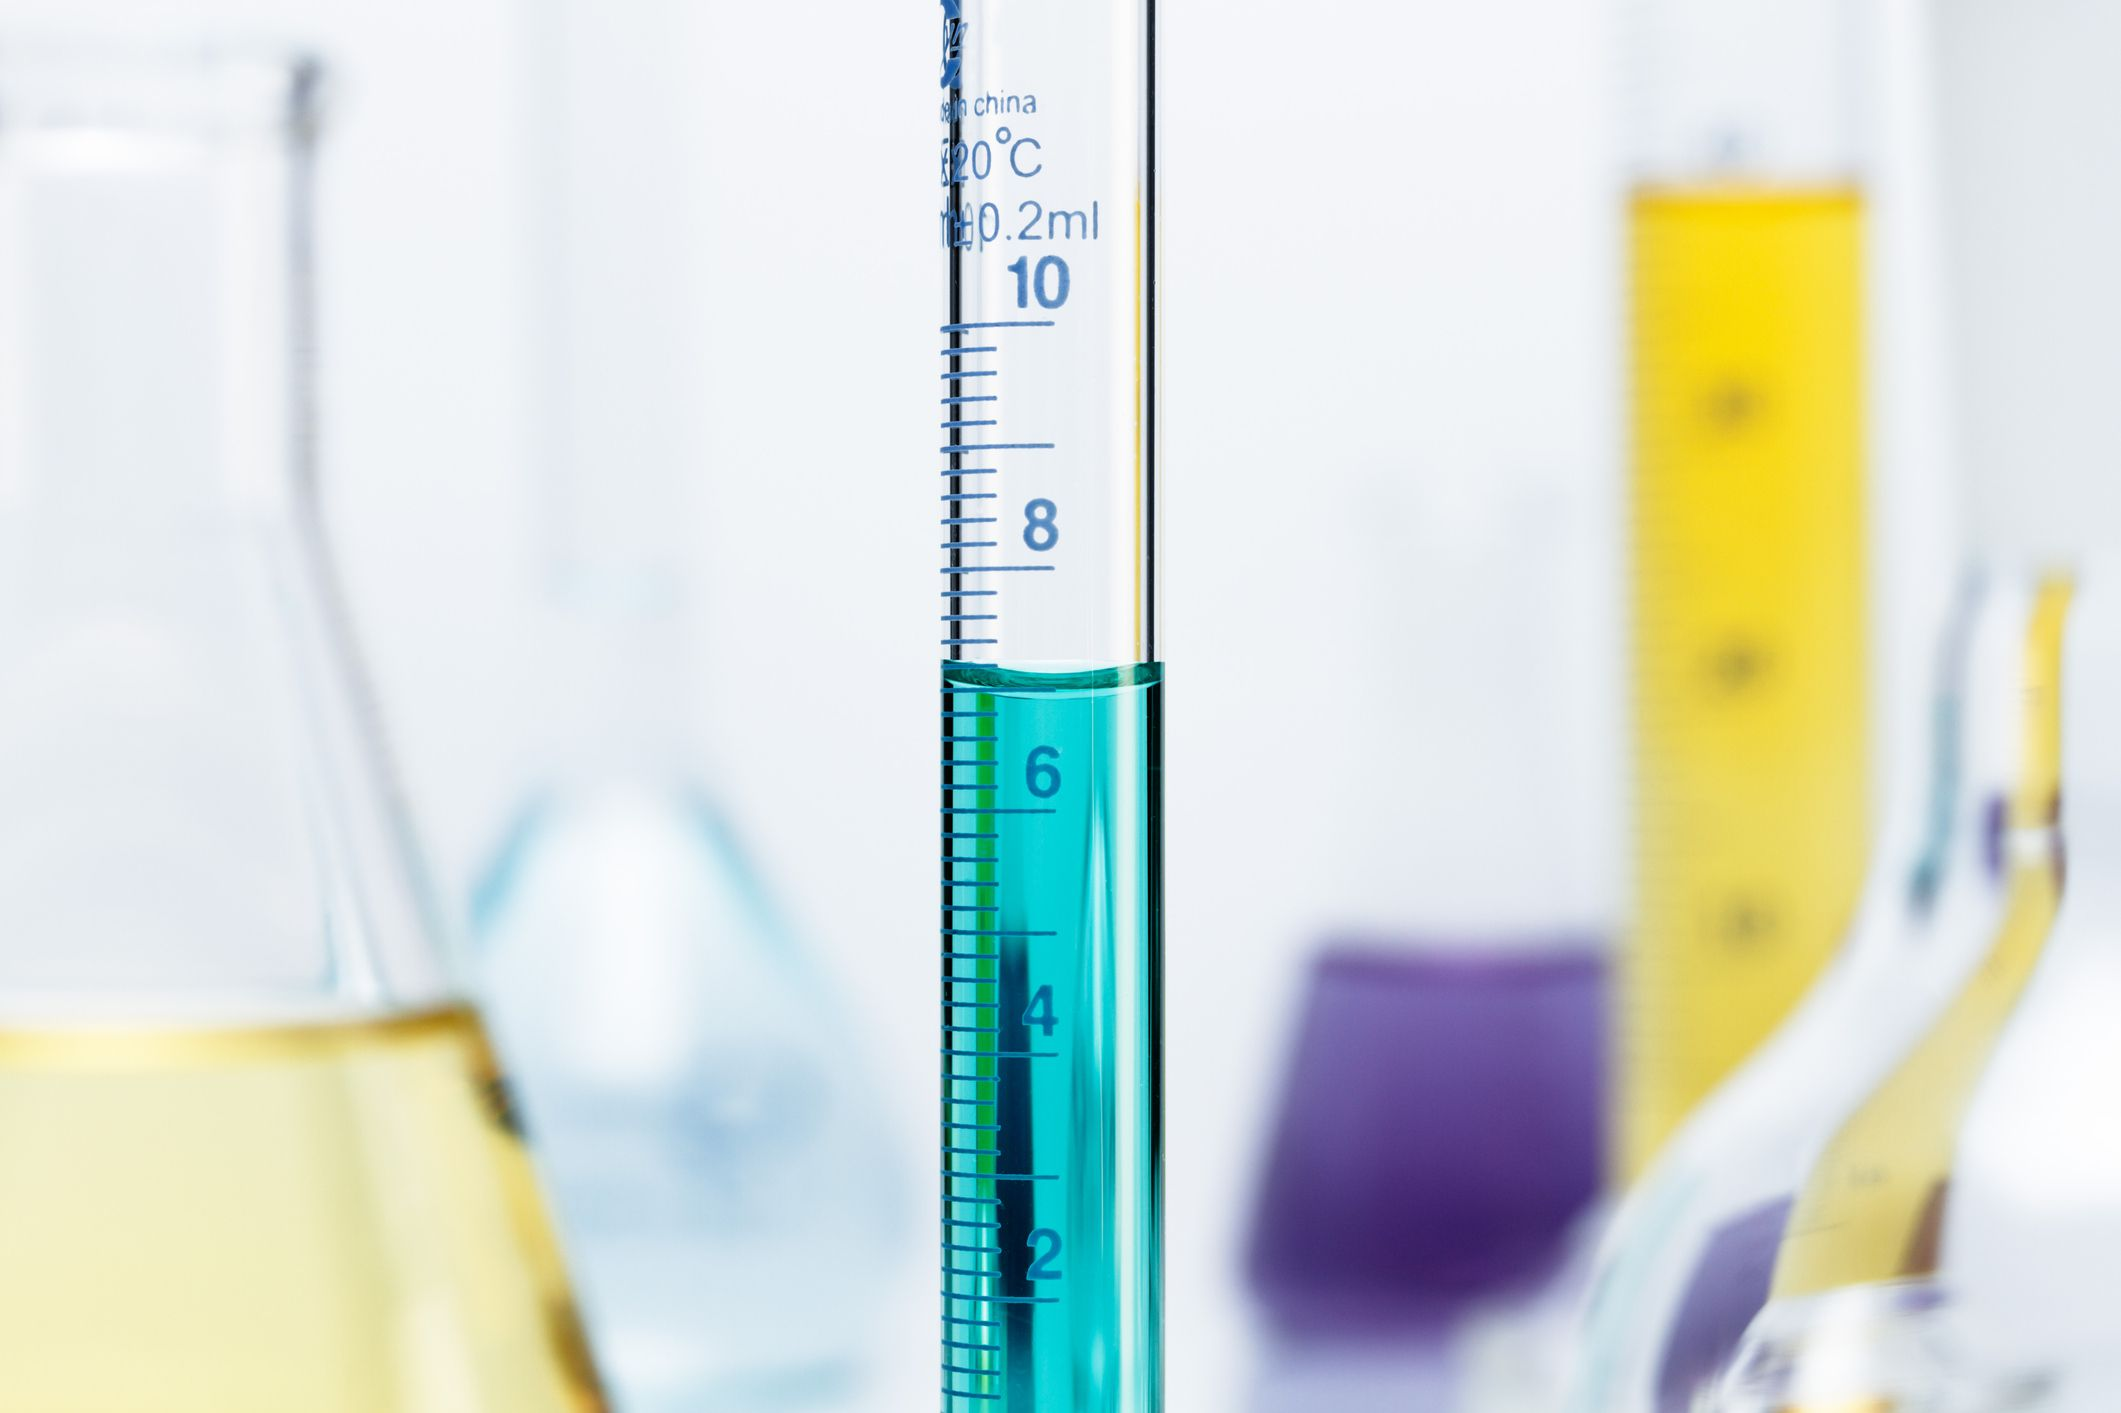 Meniscus of a blue solution in a graduated cylinder